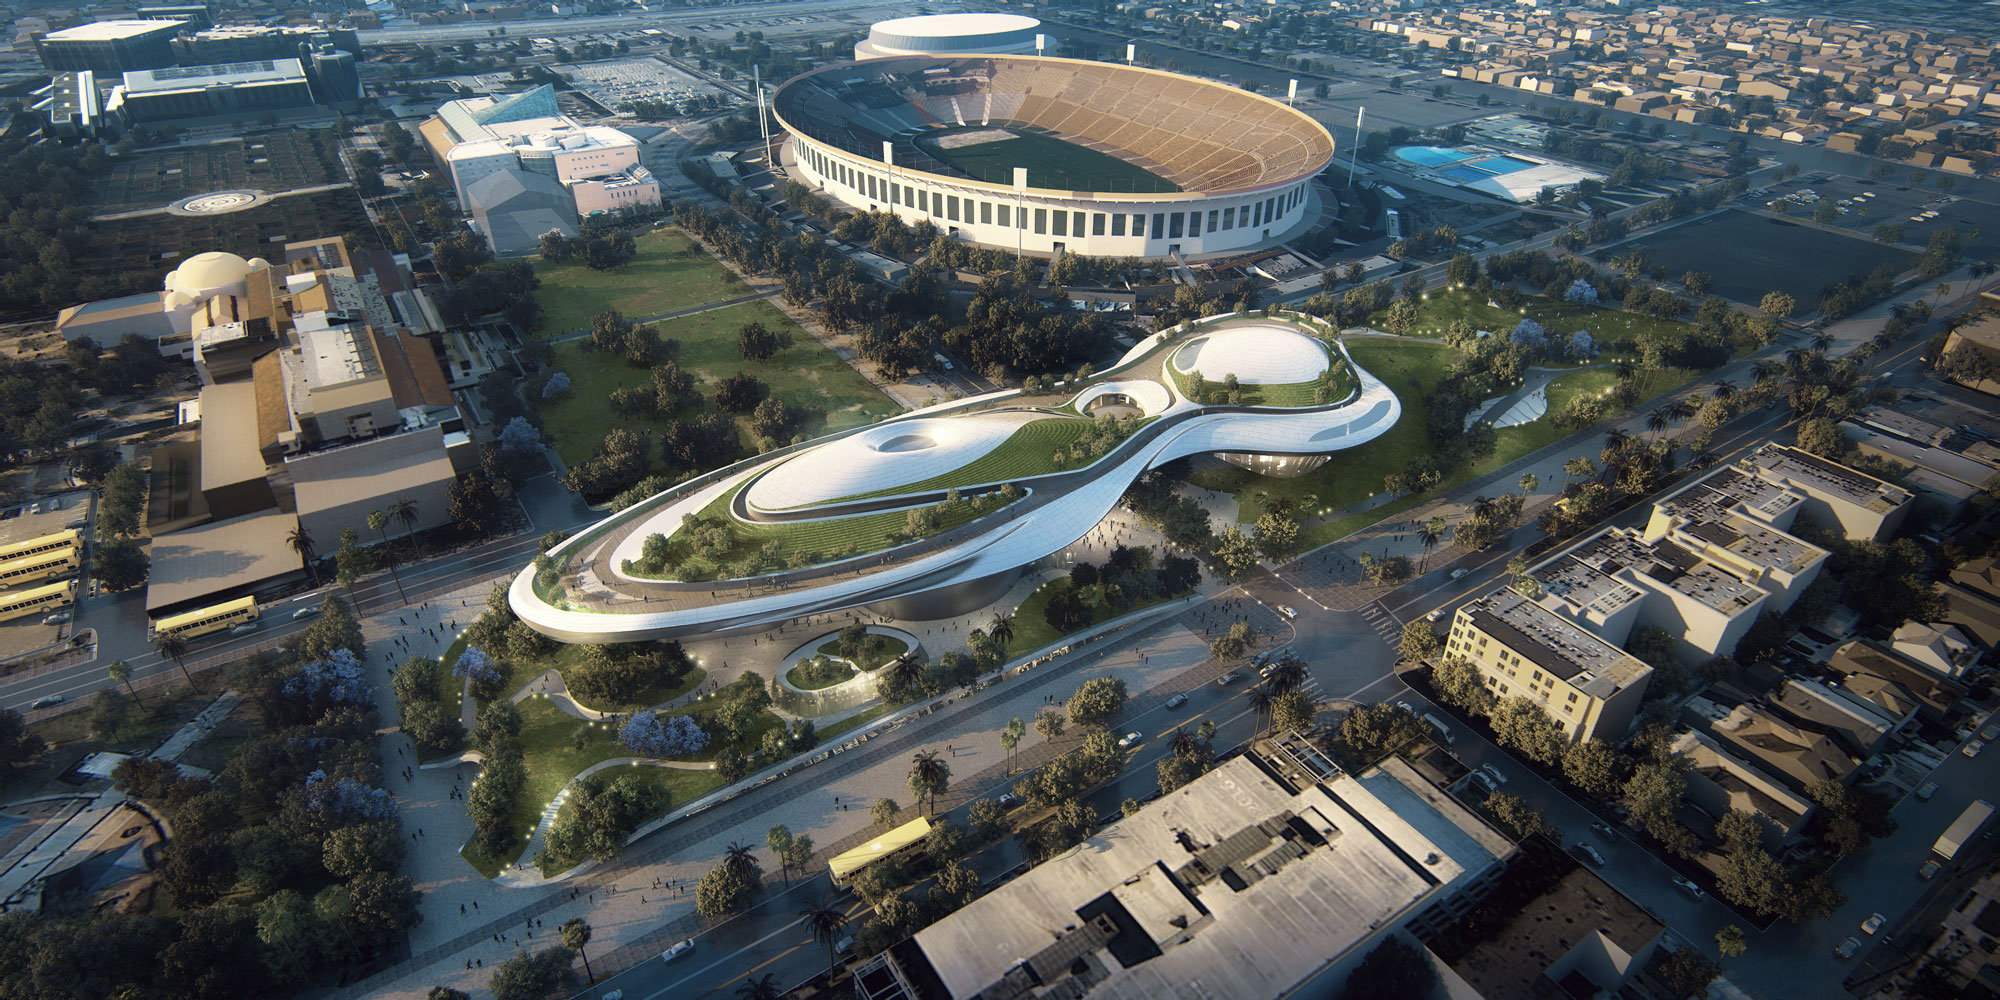 View from above of the Rendering of the Lucas Museum of Narrative Arts new museum to be built in Los Angeles. The Los Angles Coliseum is next to the new museum building.